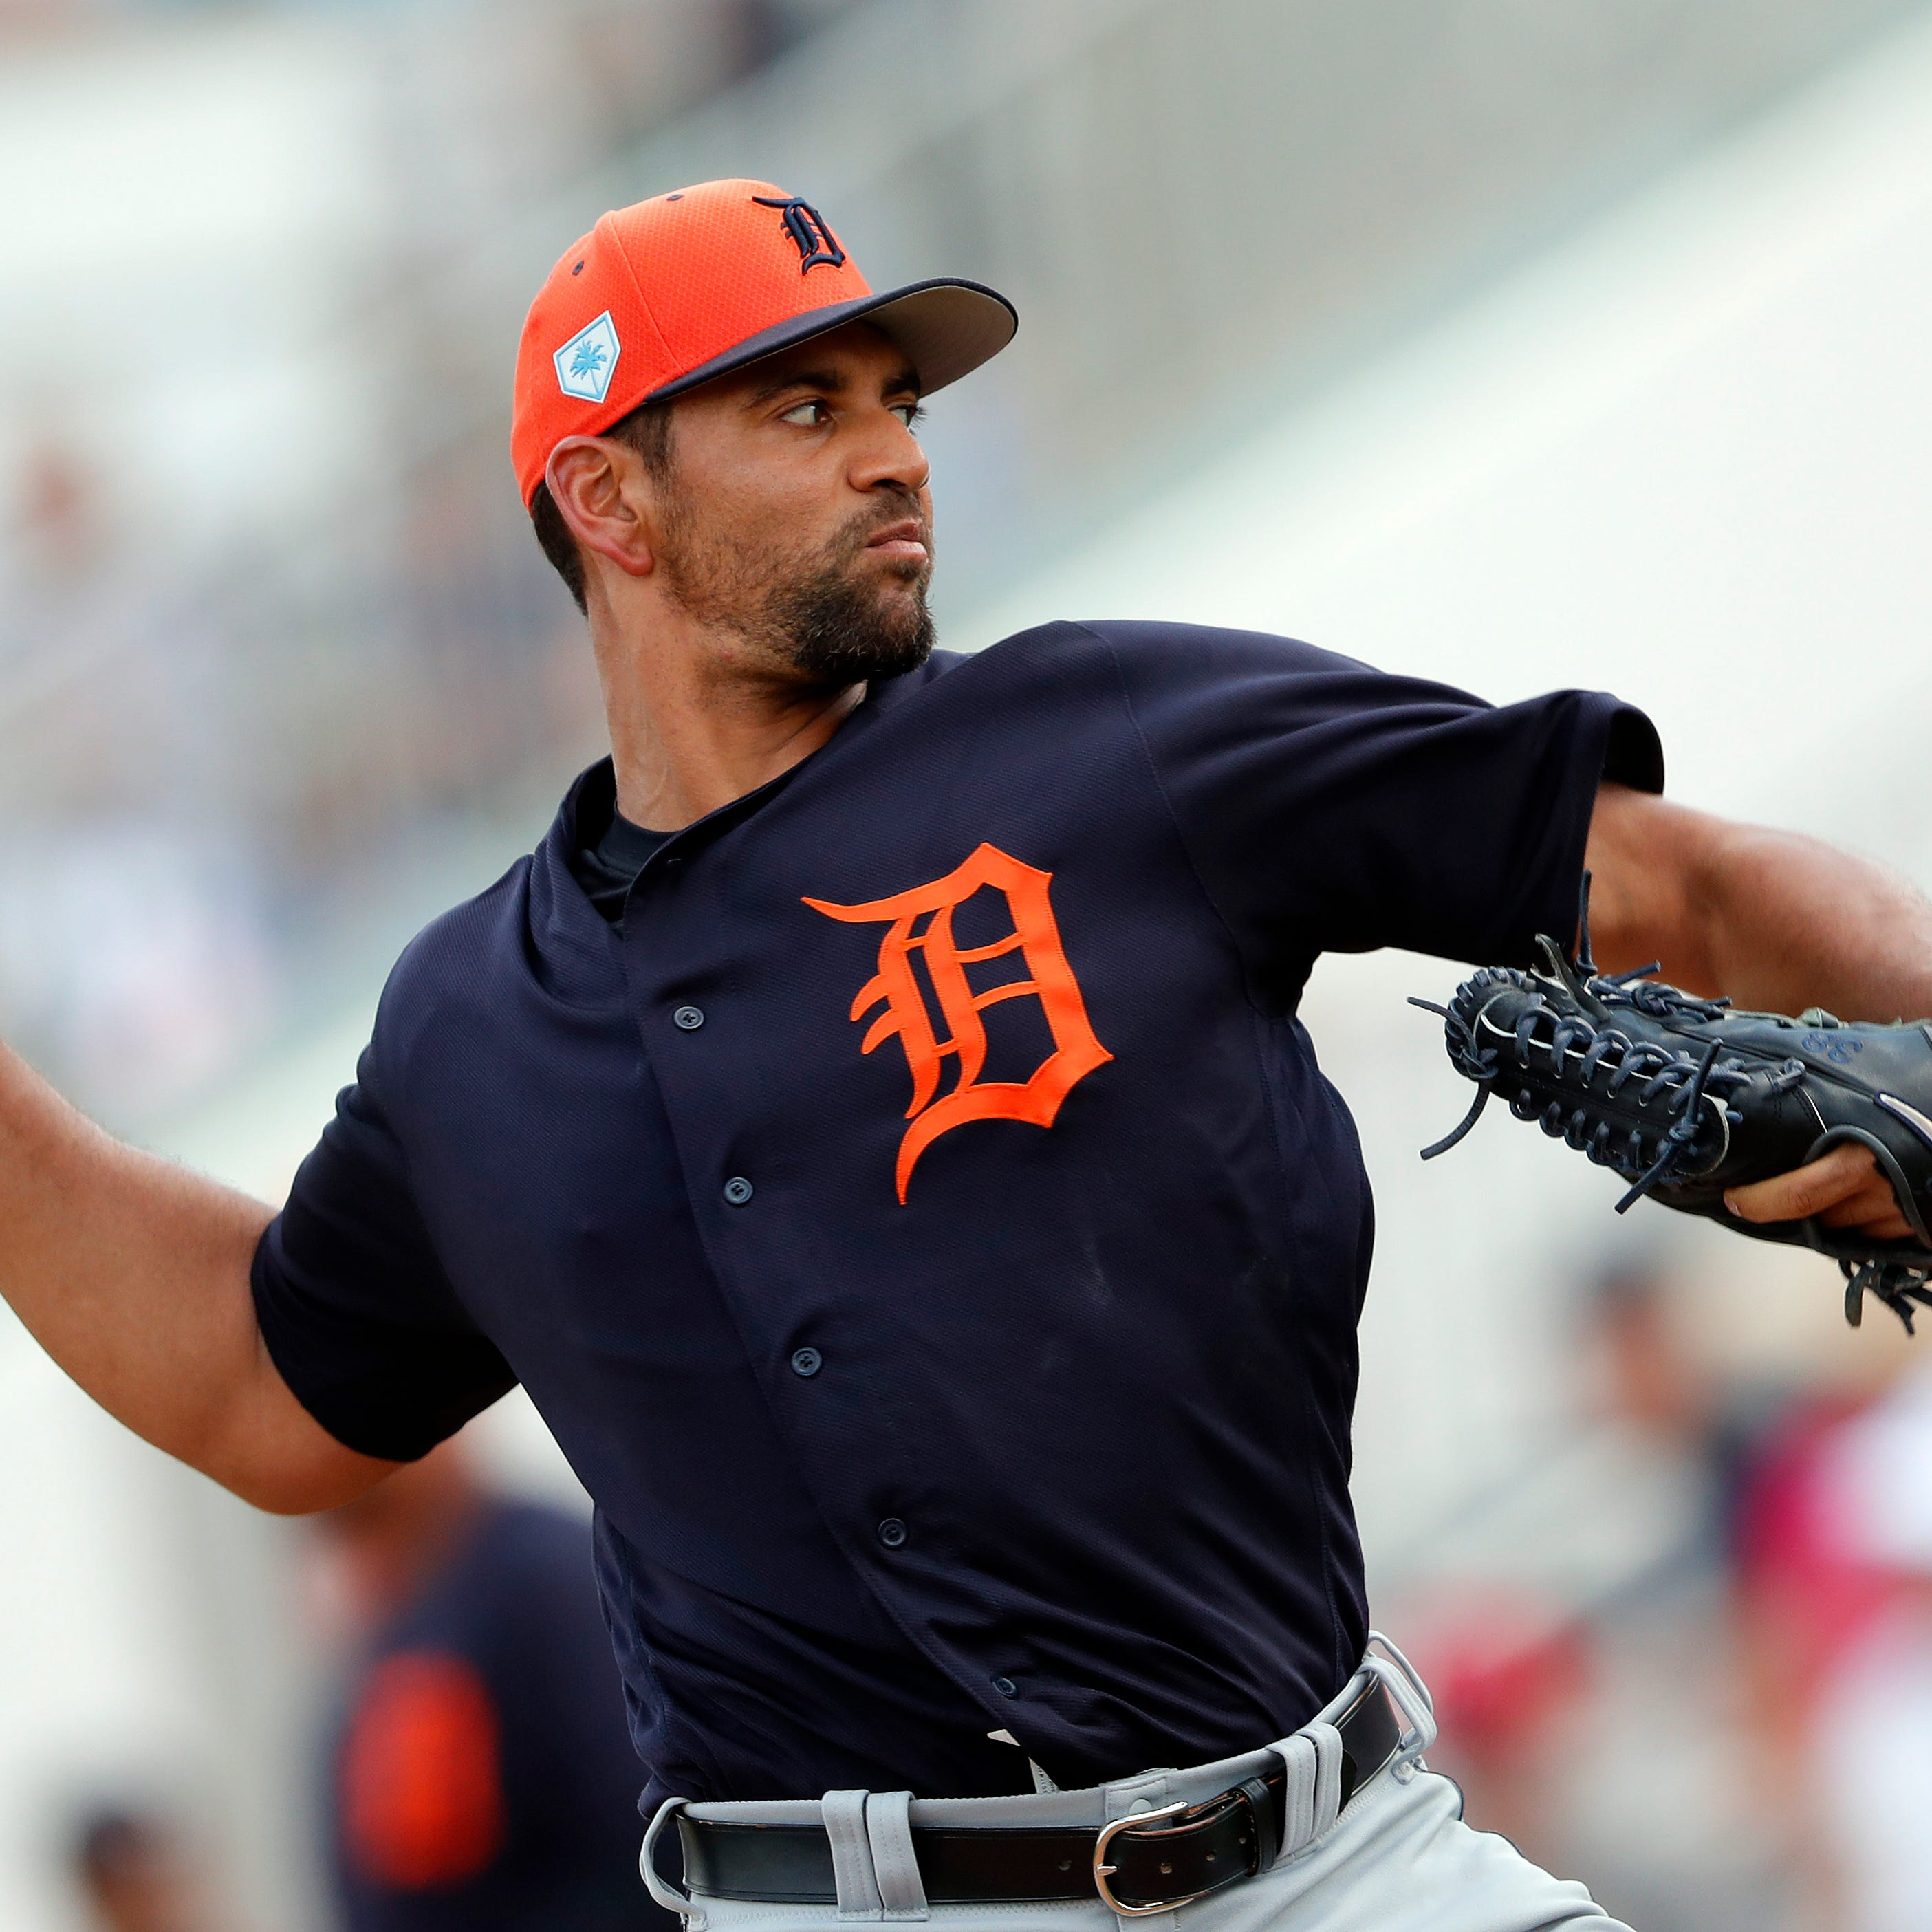 Detroit Tigers score vs. Atlanta Braves in spring training: Score updates